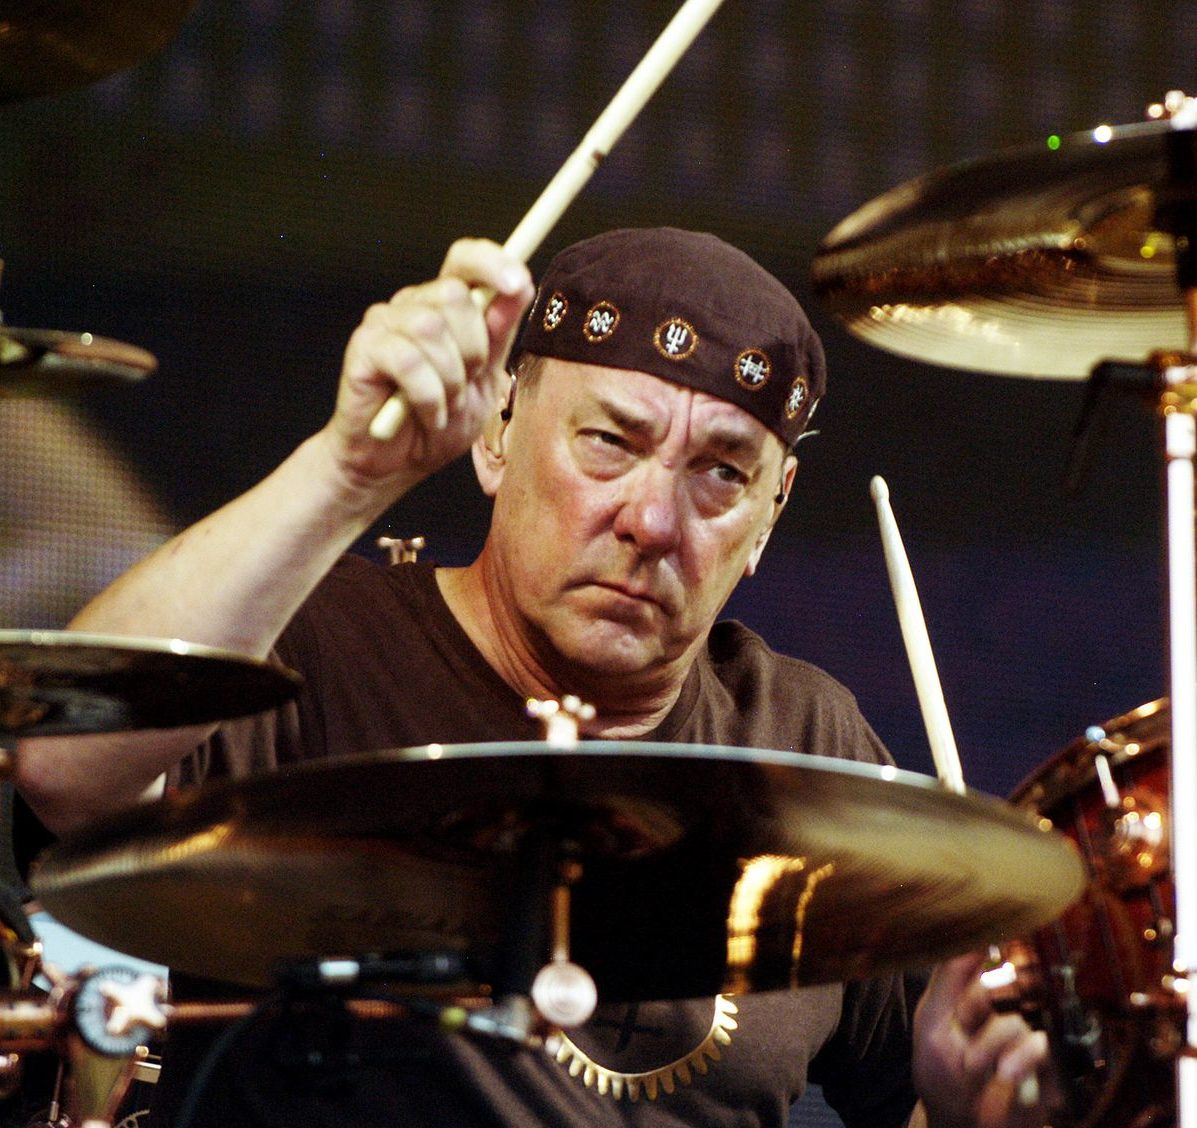 2d217b108bae475fa8844dd4ed82eb568f 10 neil peart.rsquare.w1200 e1610449673486 20 Things You Probably Never Knew About Rush